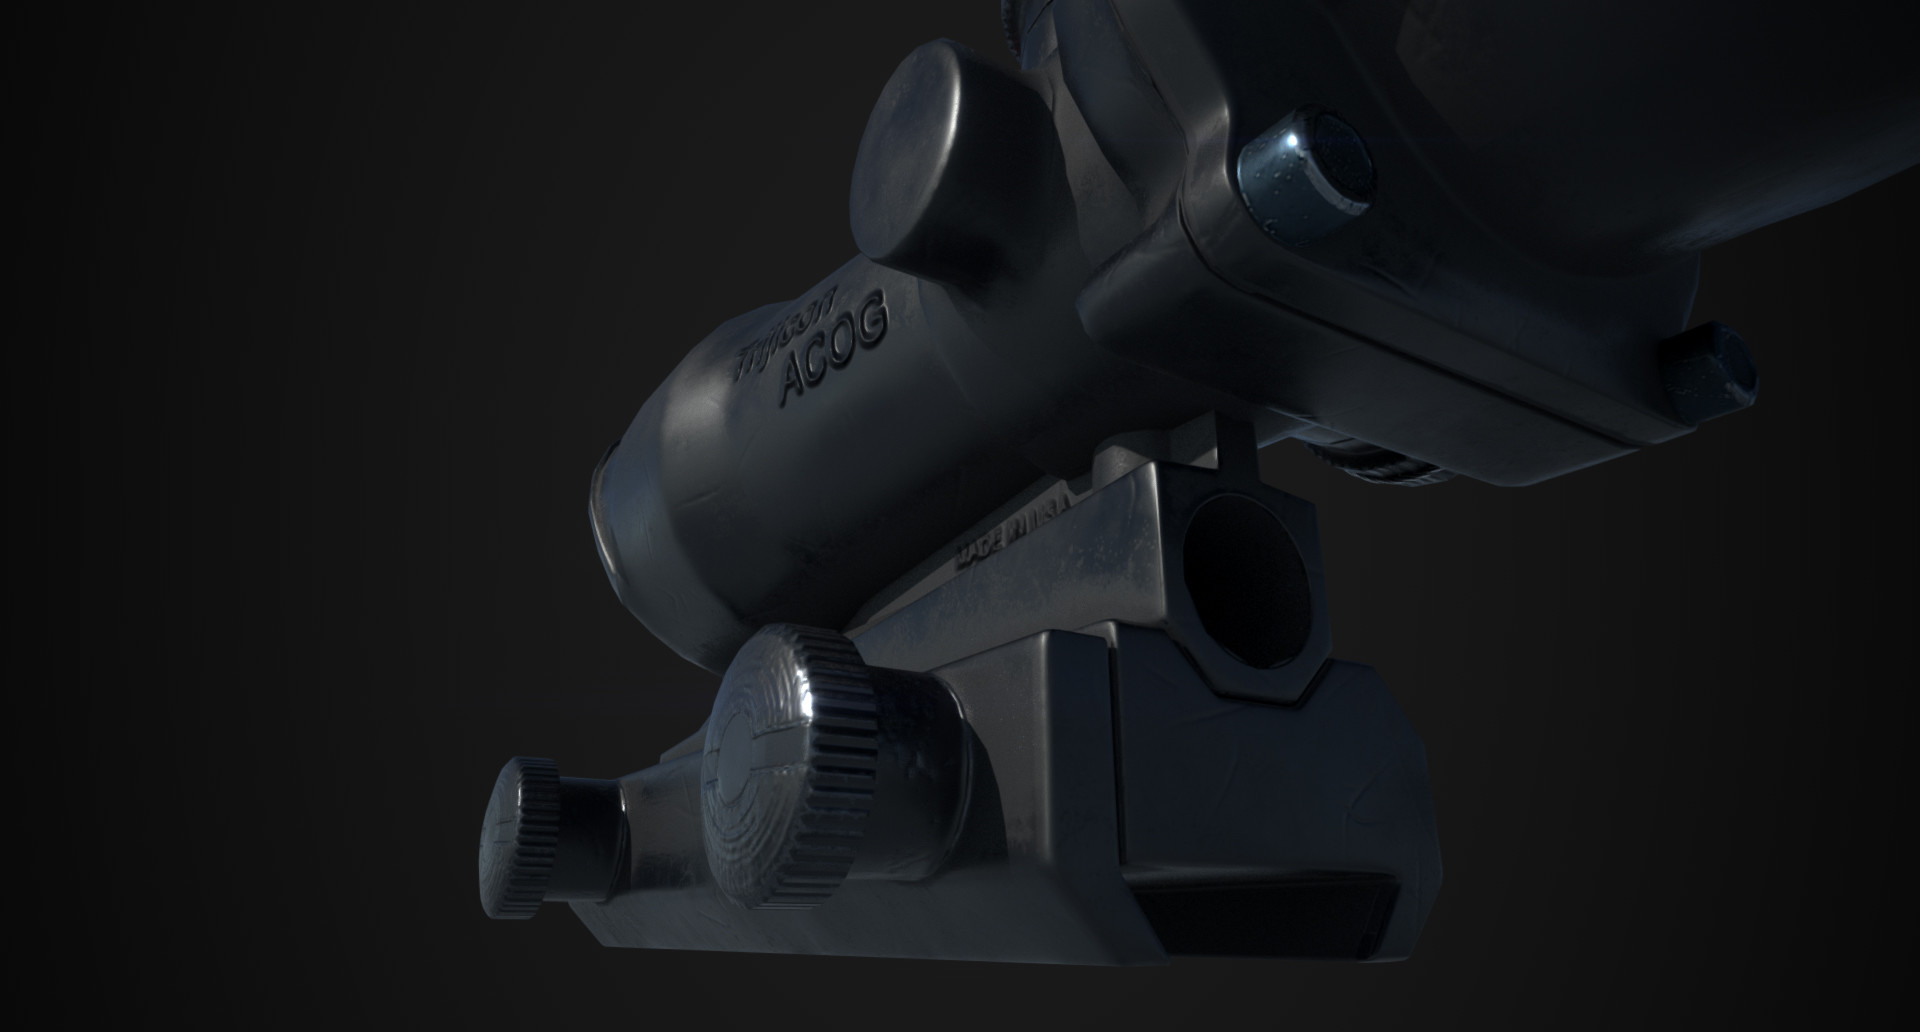 Andrew finch scope render 6